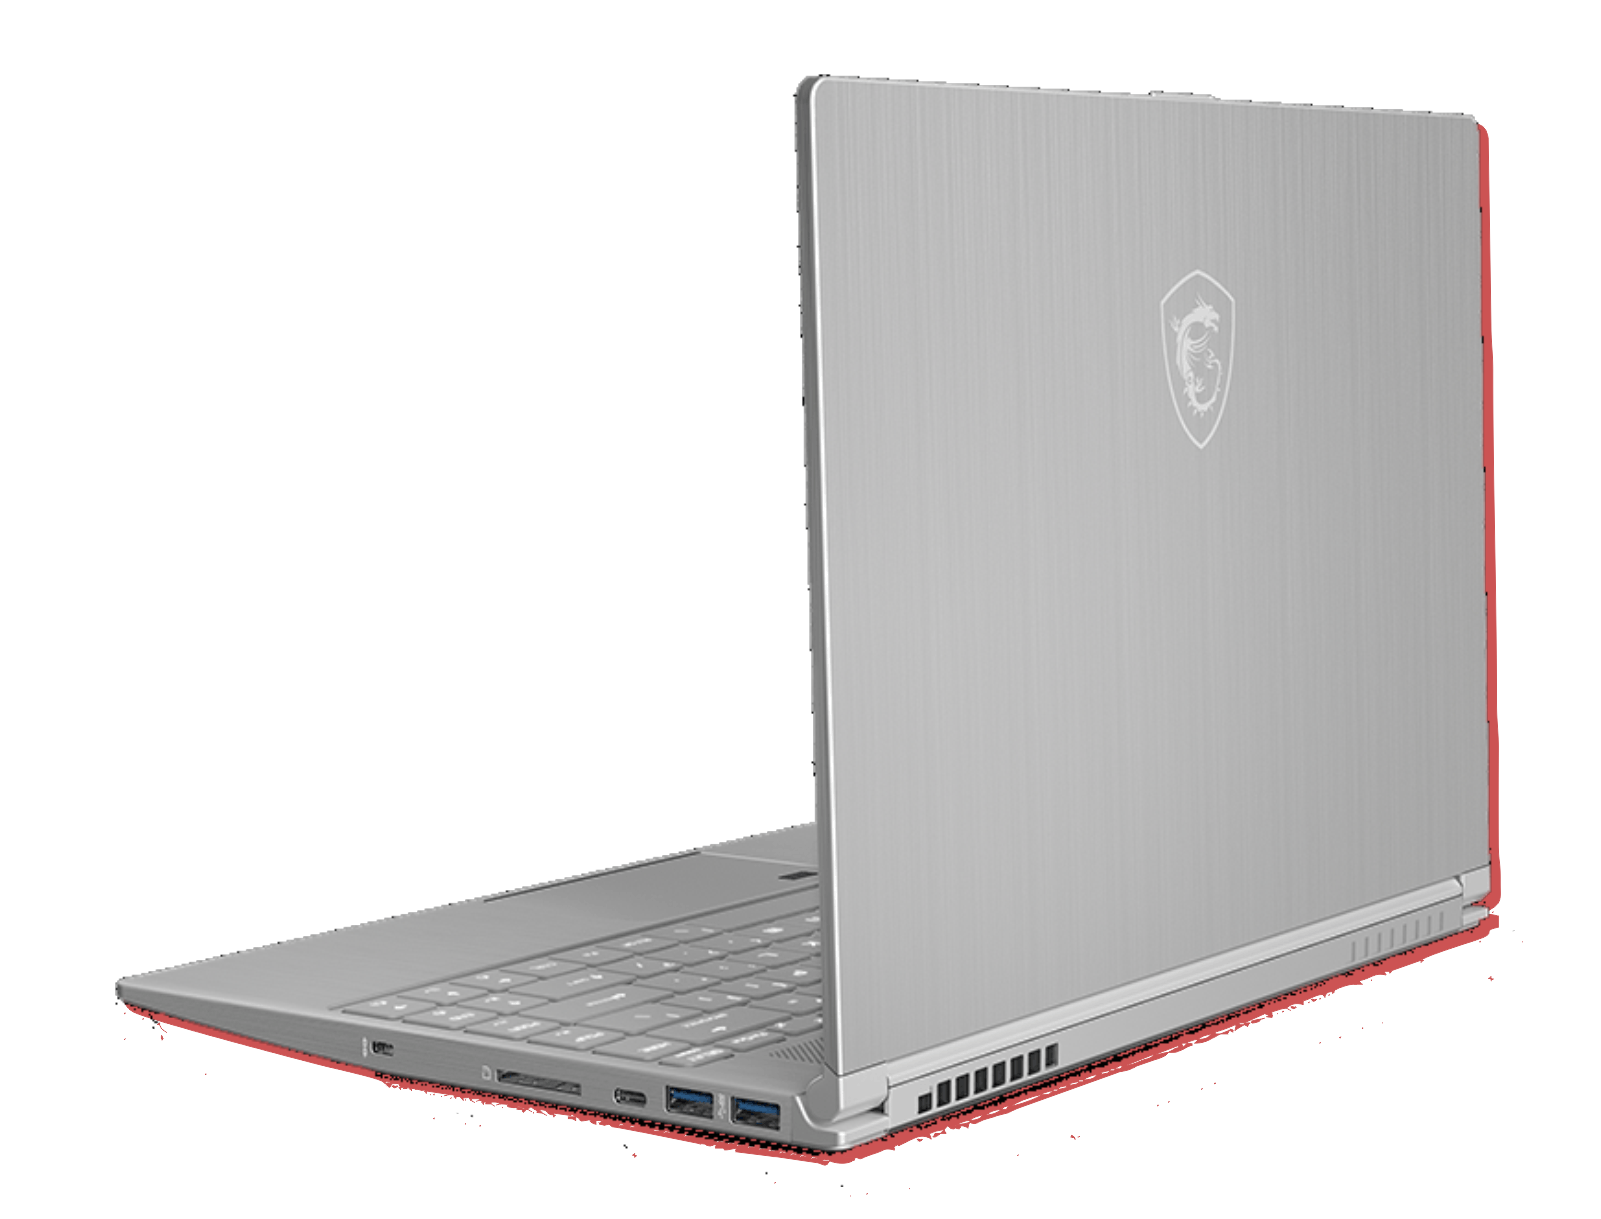 MSI PS42 8RB I7 8250U 1